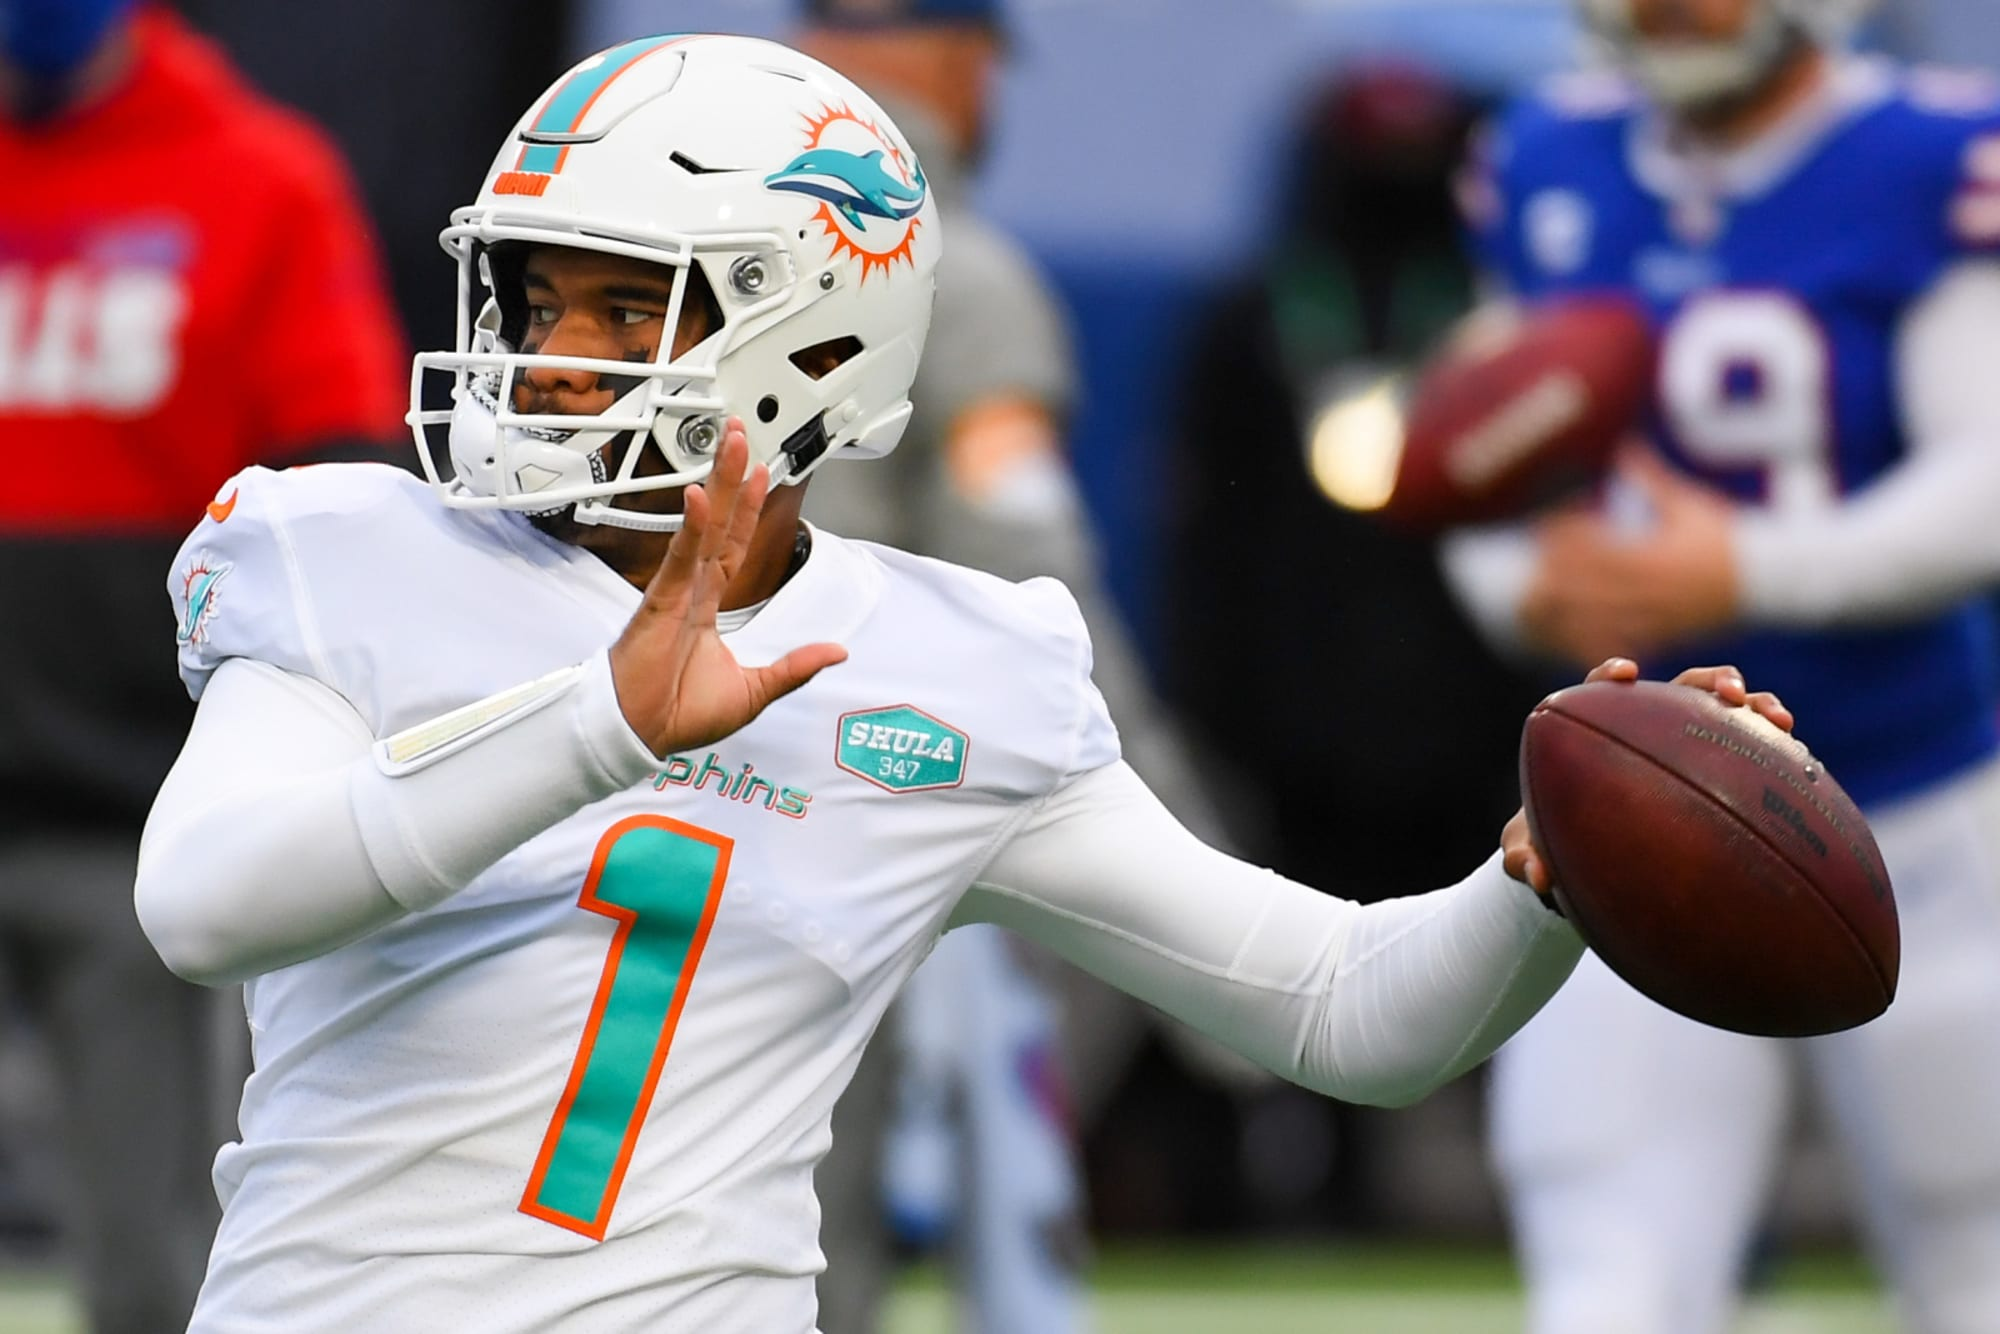 Dolphins: David Carr sees Steve Young in Tua Tagovailoa